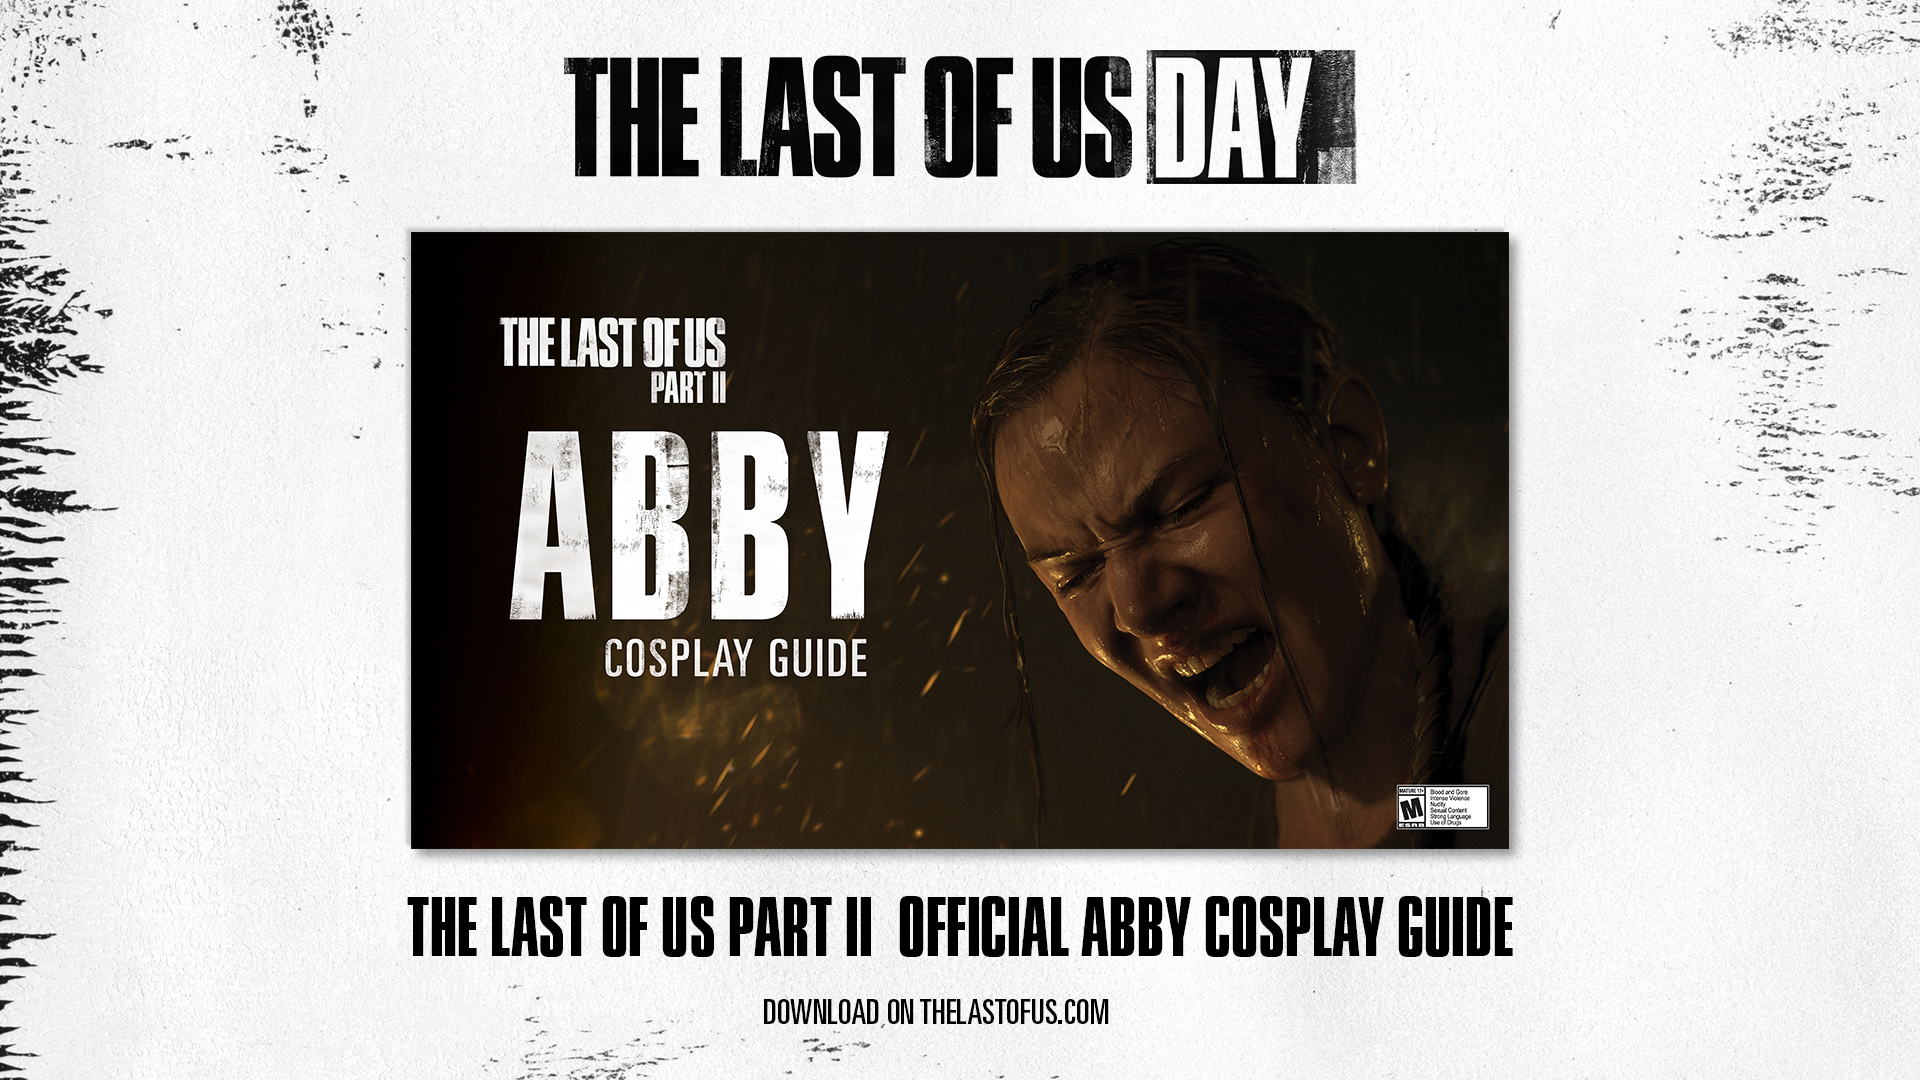 The Last Of Us.Day Abby's Cosplay